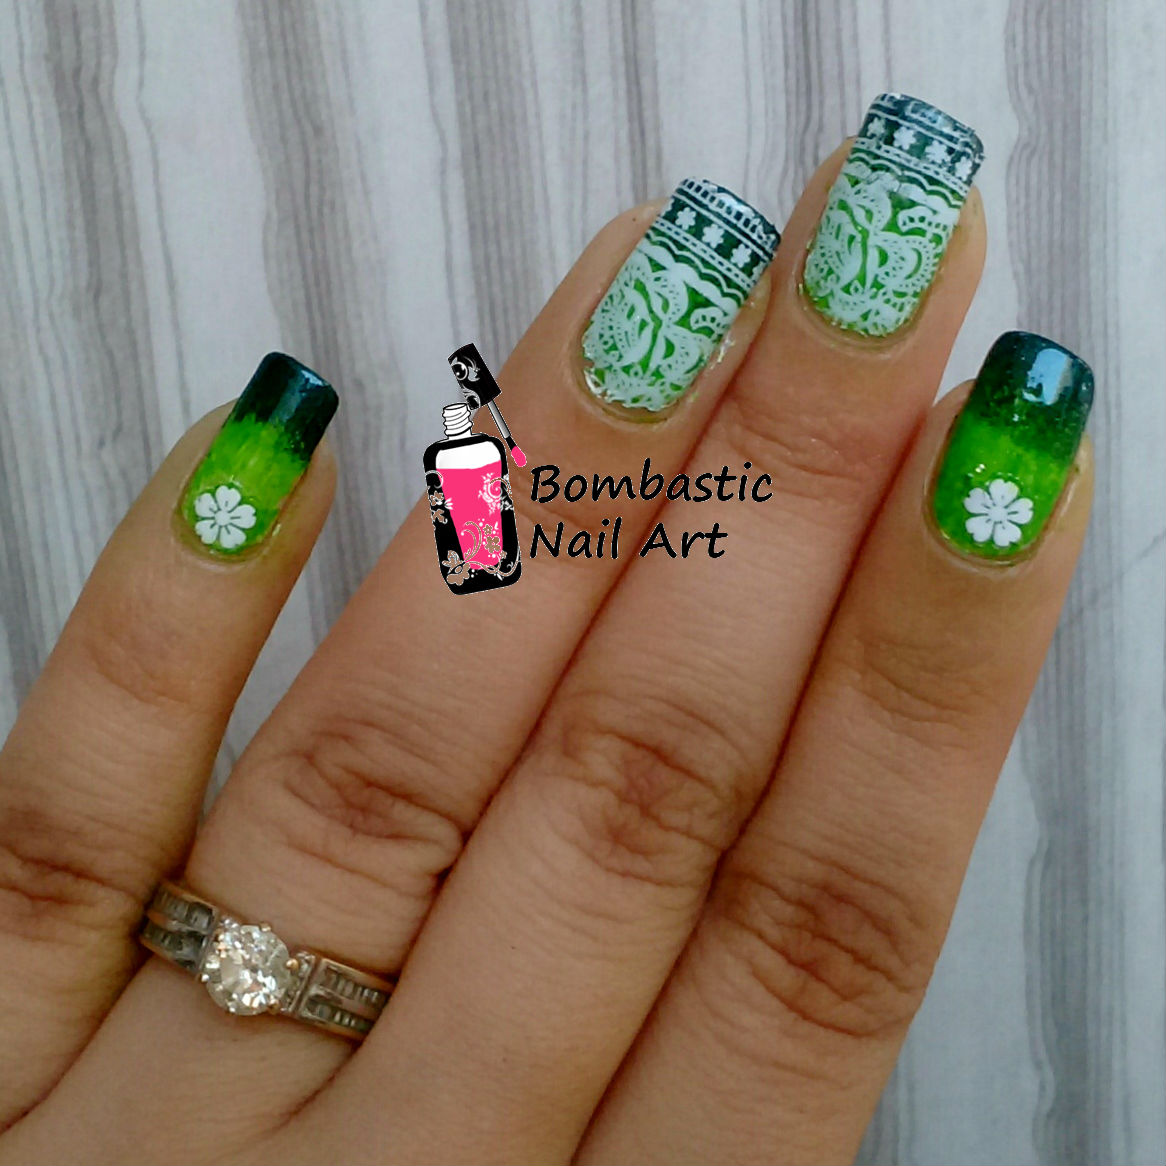 I Hope You All Enjoyed My Cheat For Diy Lace Nail Art With Water Slide Decals Please Share Your Views